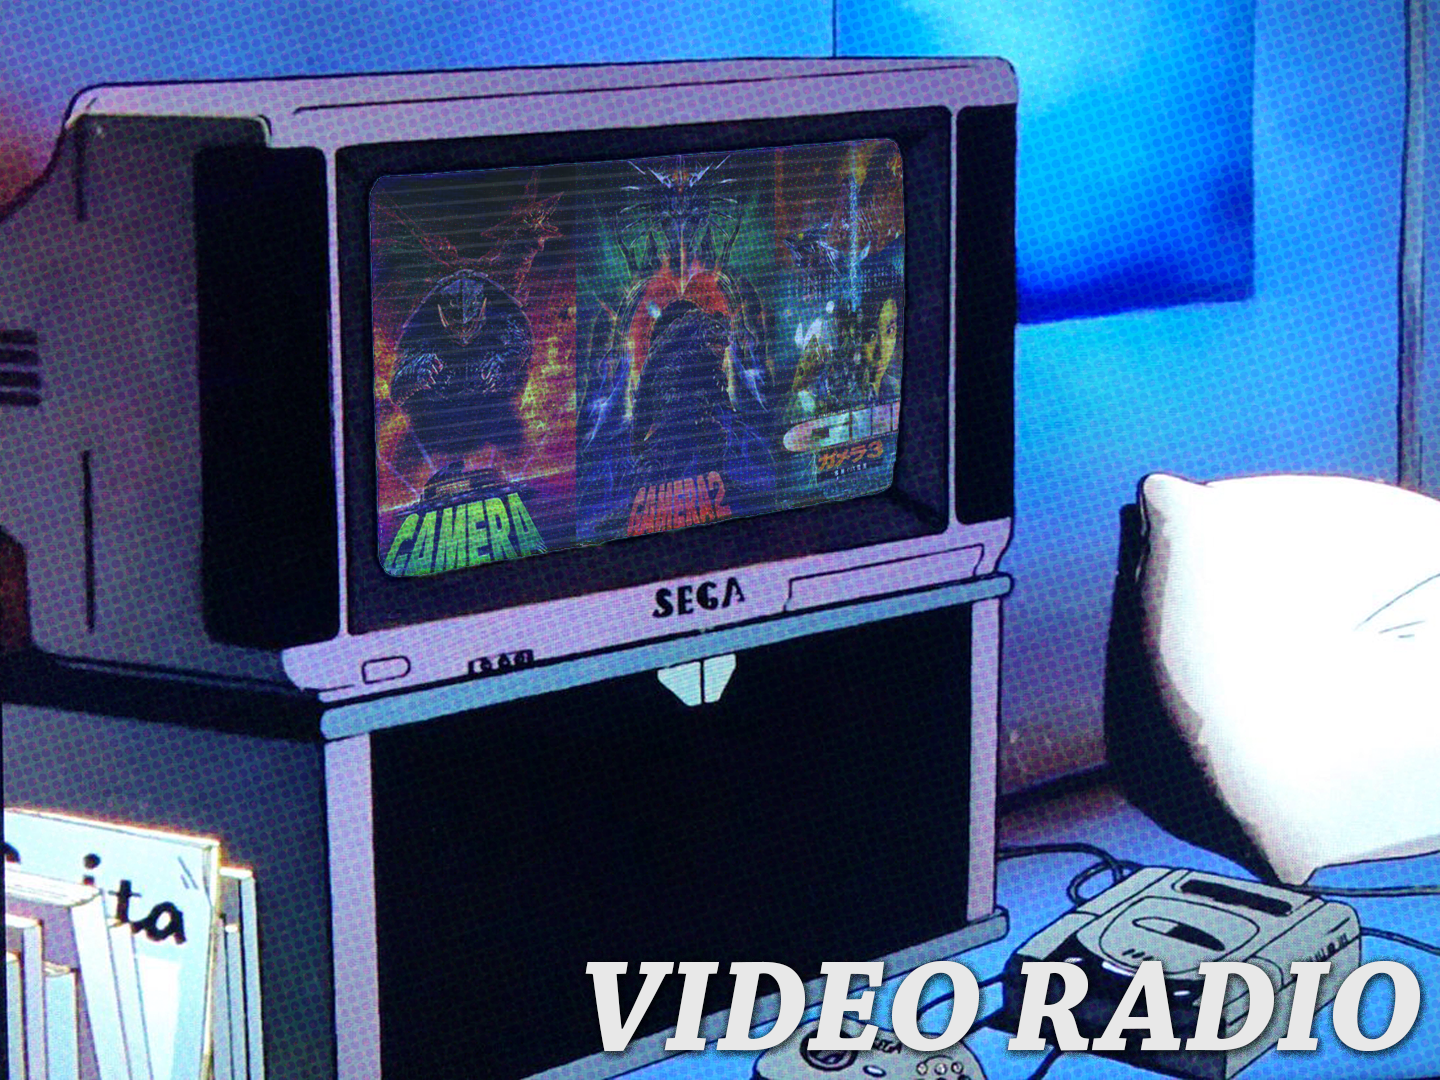 VIDEORADIO_gamera.png